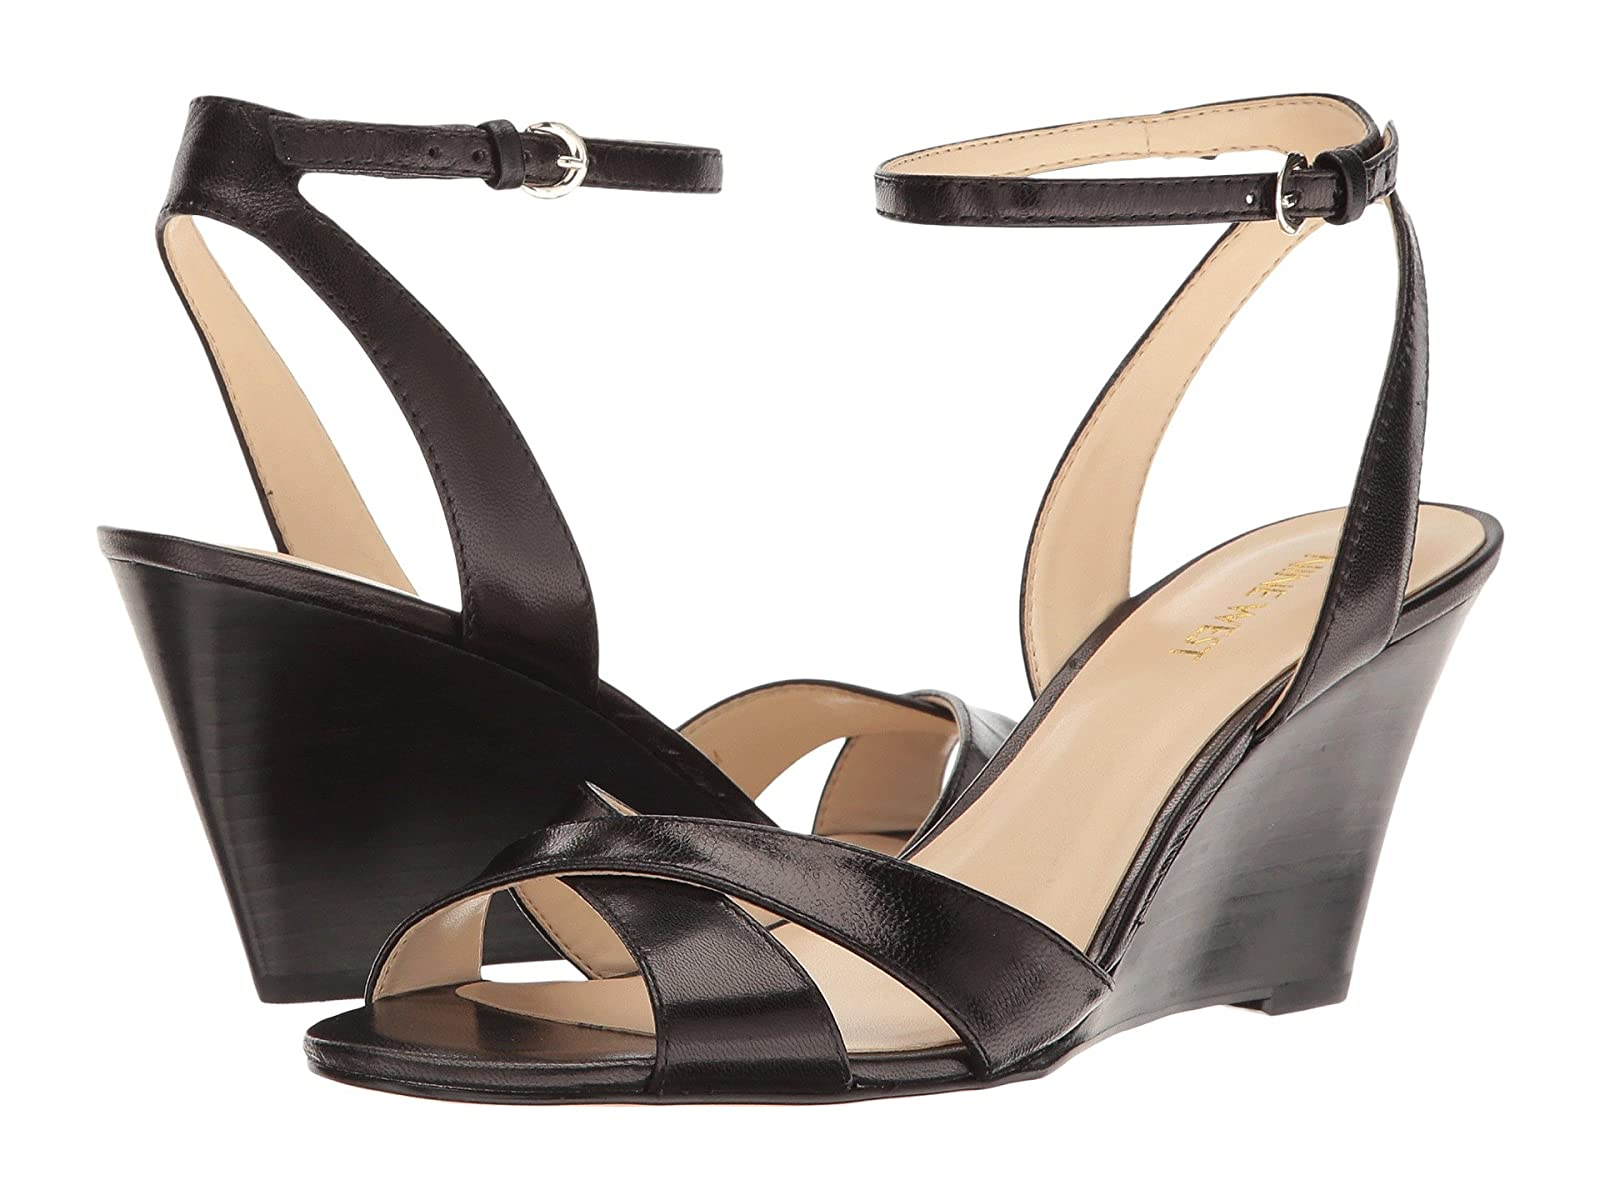 Nine West Kami Wedge SandalCheap and distinctive eye-catching shoes